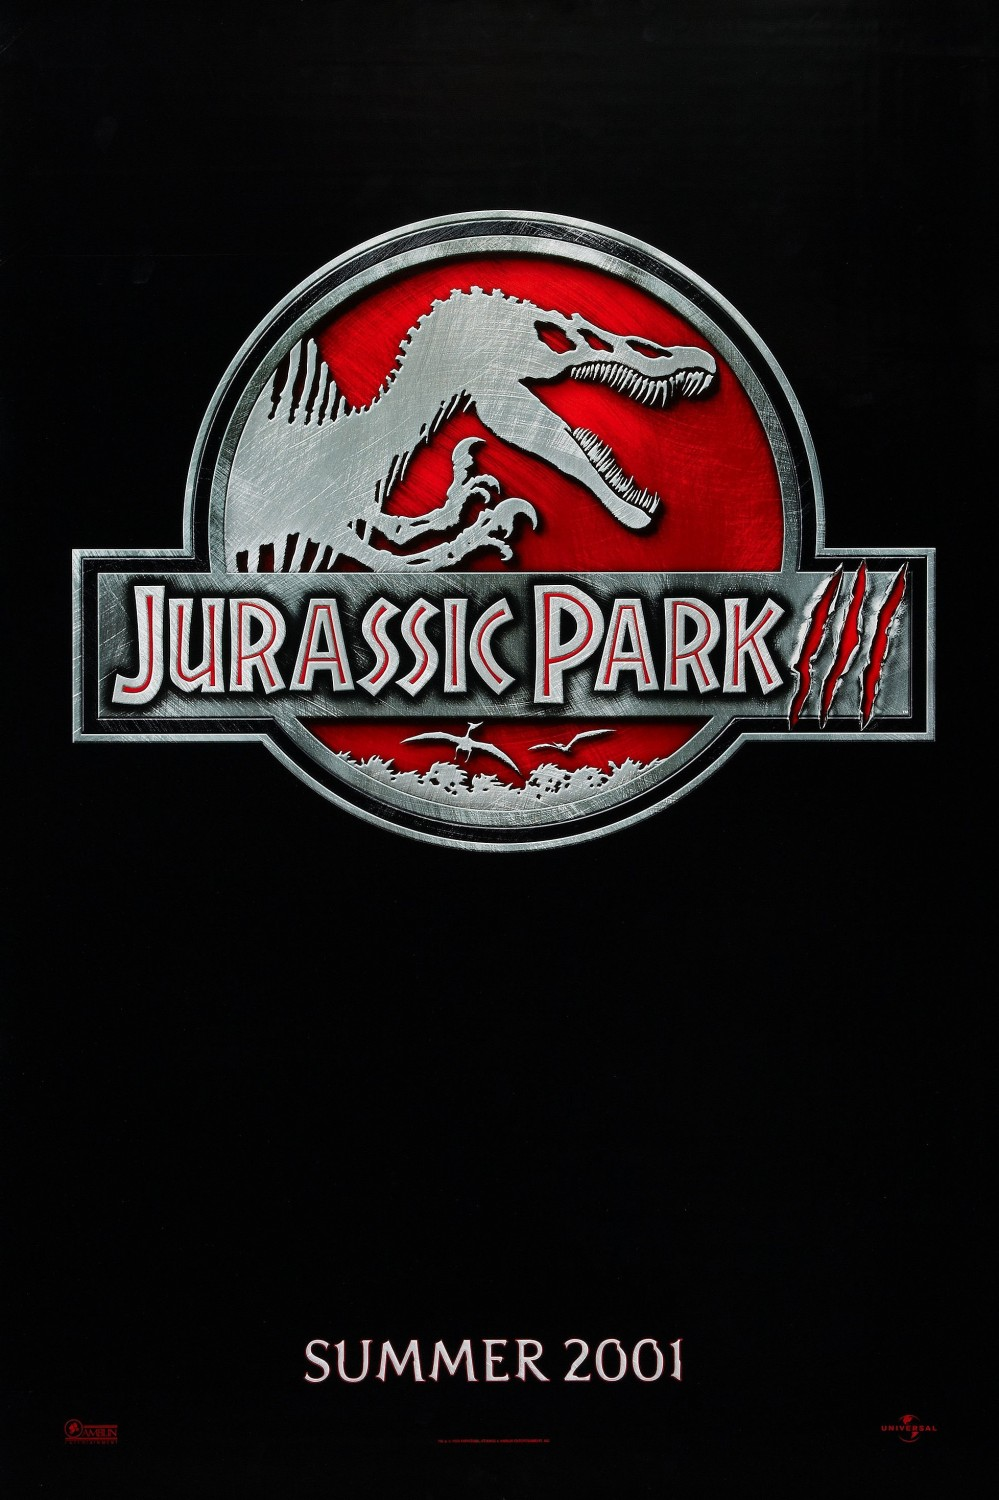 Feature Jurassic World The Trail To Fallen Kingdom Part 3 Park Fuse Box Iii Ver1 Xlg